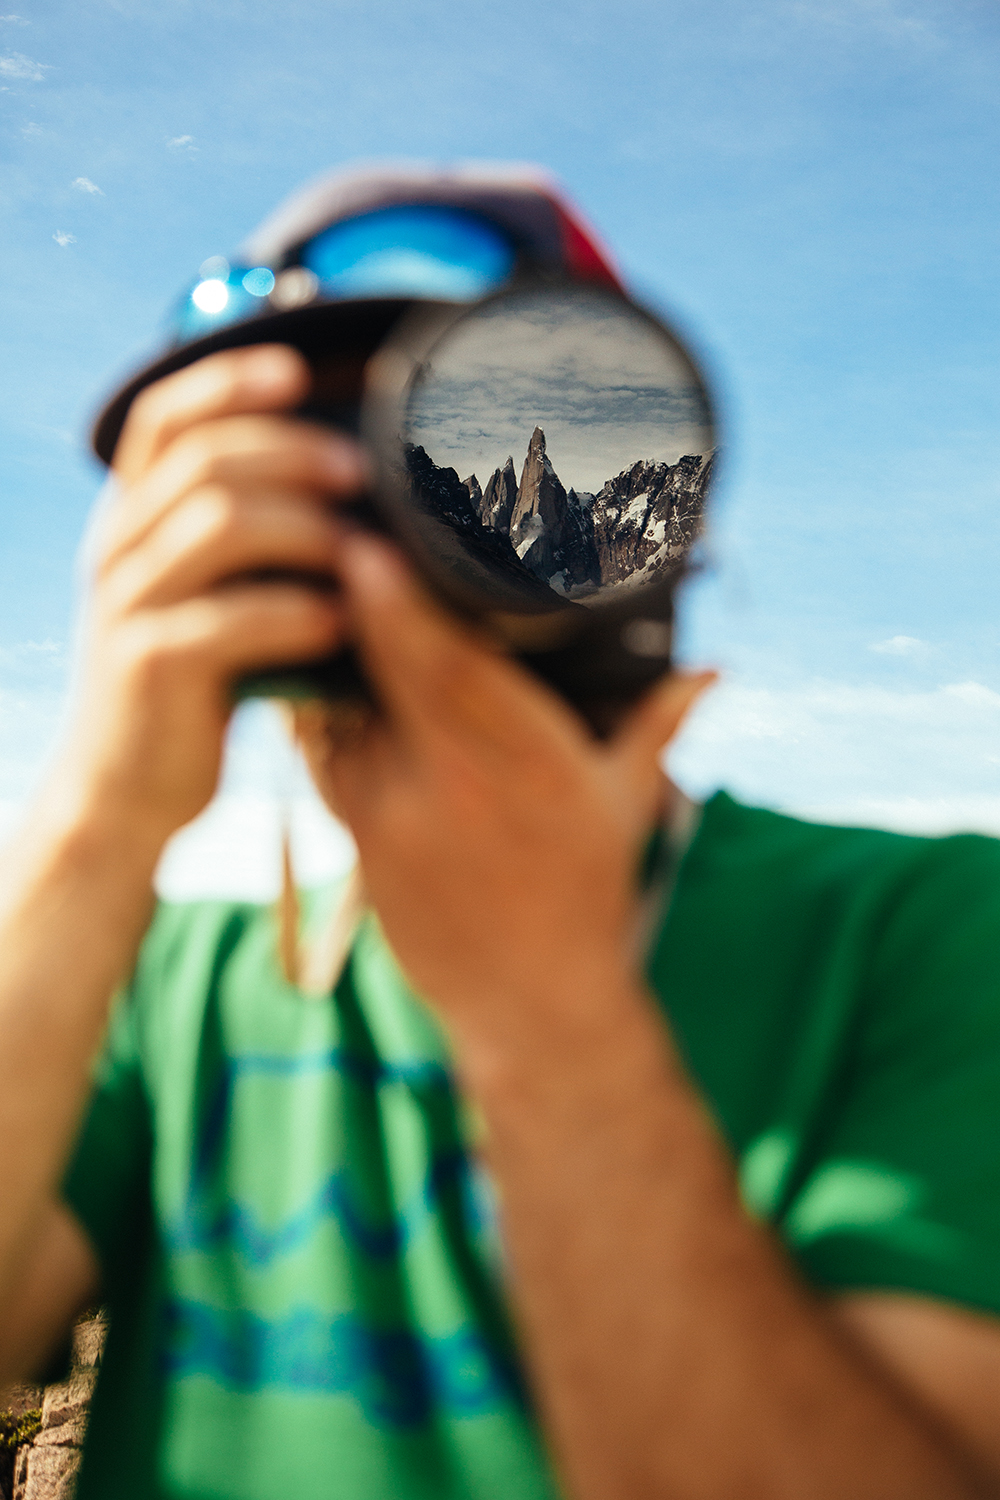 Mikey Shaefer is a man in his element. El Chaltén, Patagonia.